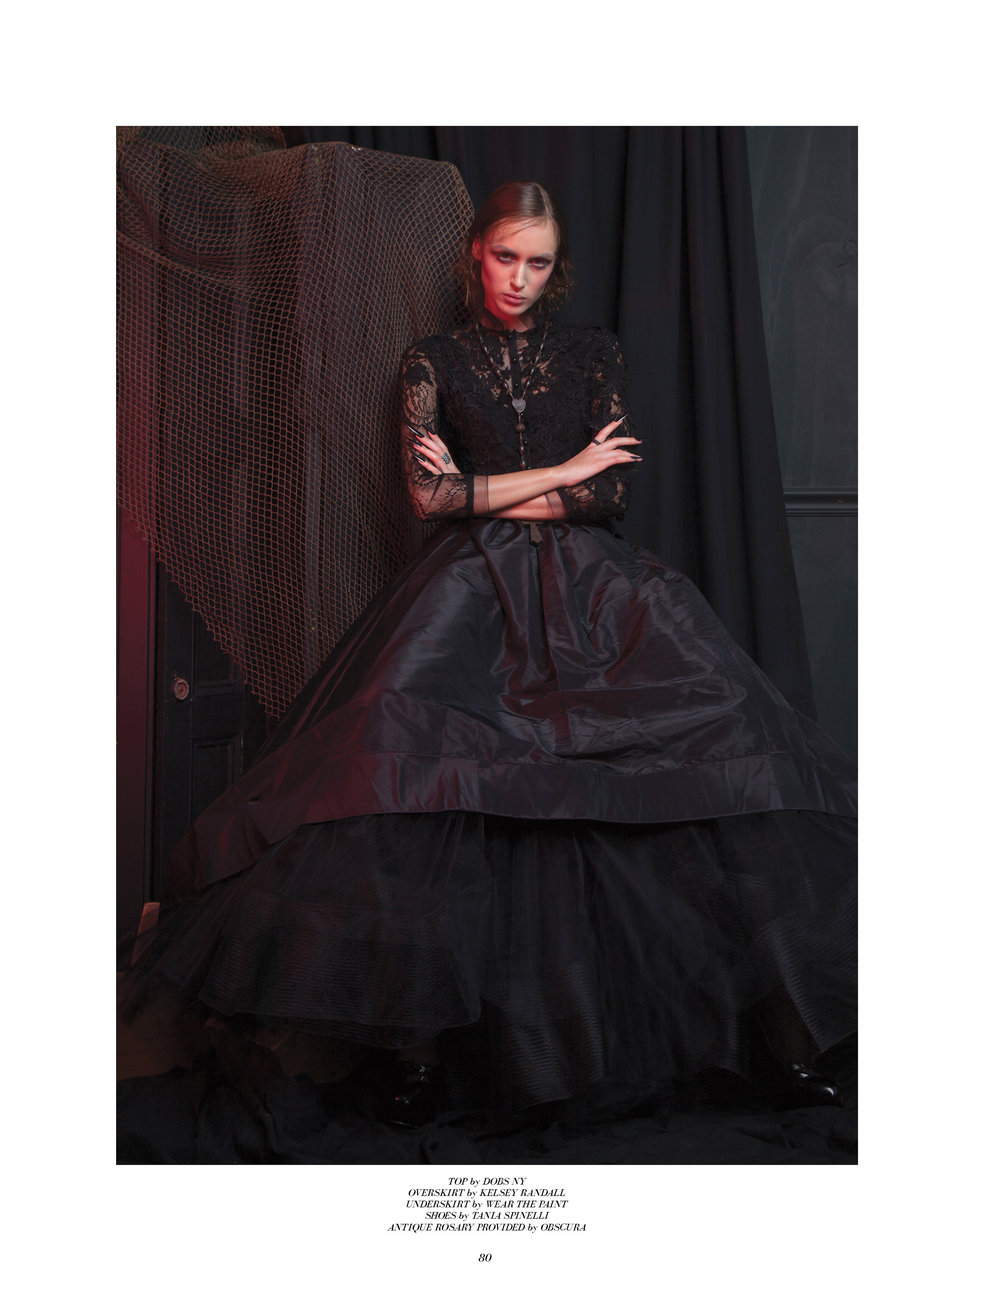 Copy of kelsey randall emerging designer made-to-measure fashion editorial custom bespoke black silk taffeta gown gathered waist wishbone racer back horsehair full skirt